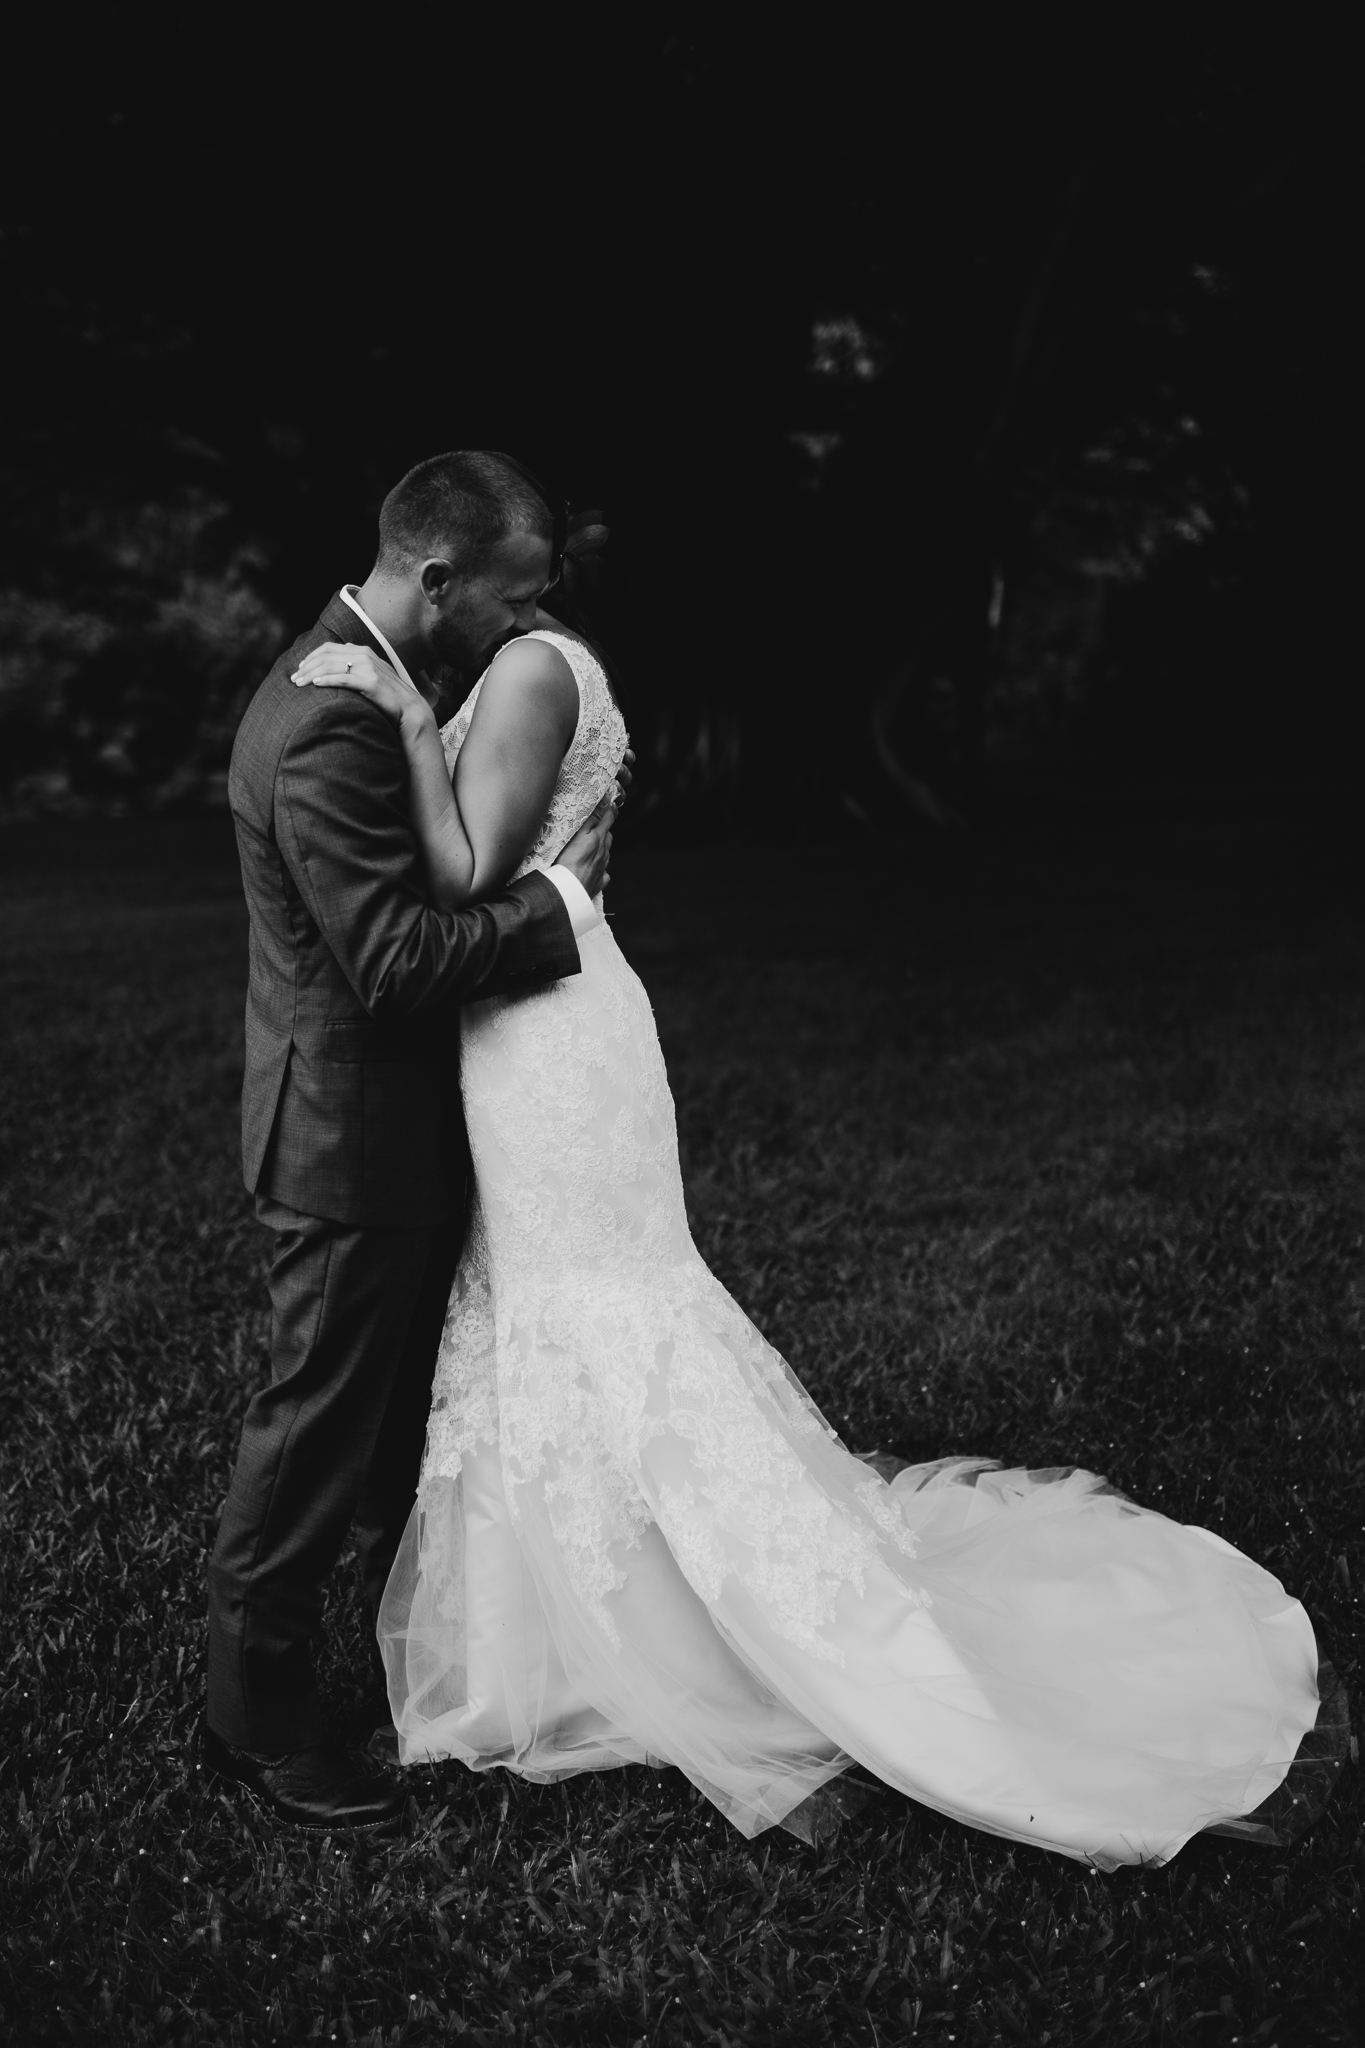 Black and White Emotional Wedding Picture